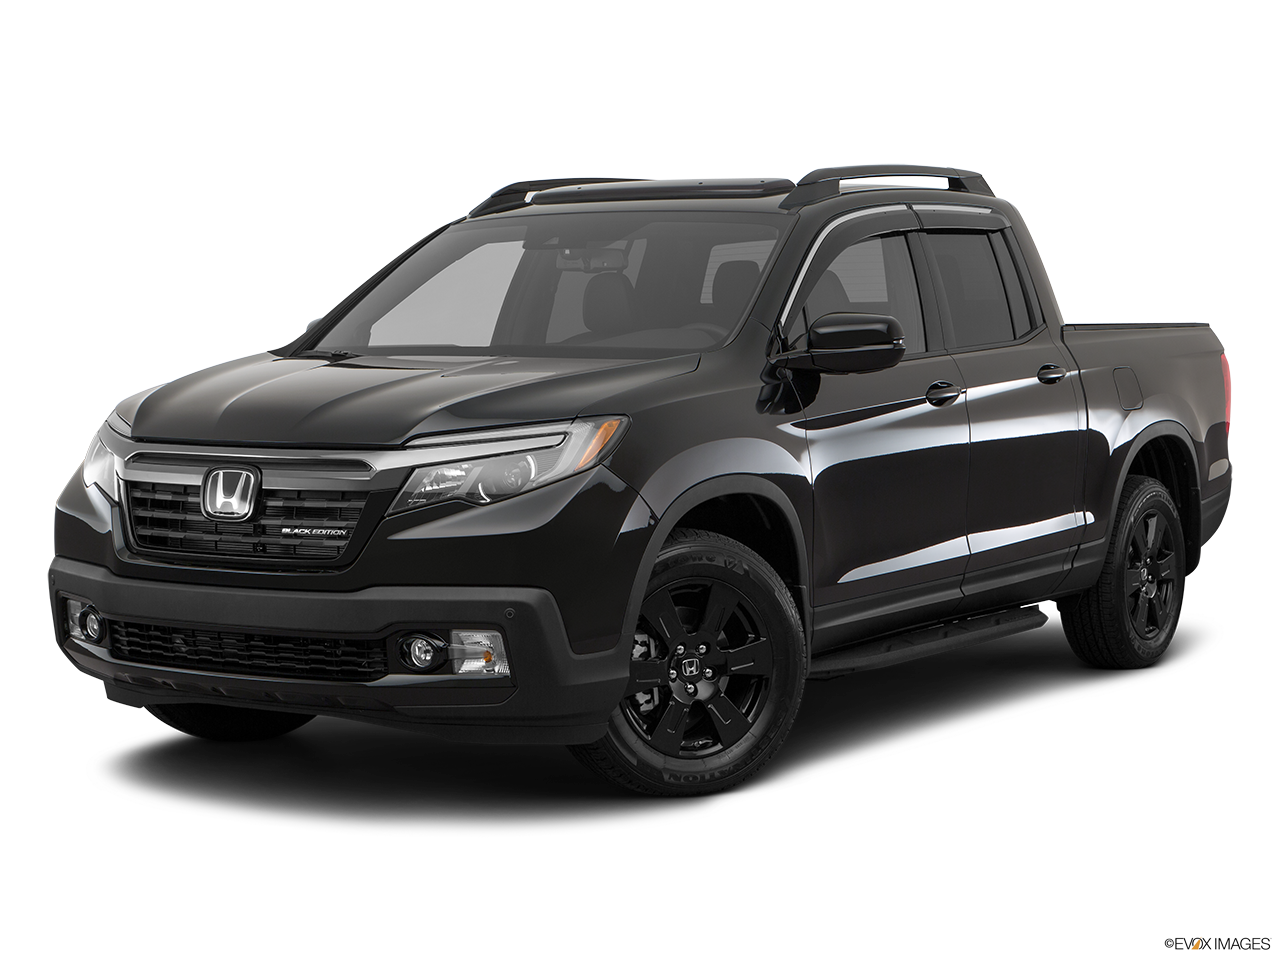 Test Drive A 2017 Honda Ridgeline at Galpin Honda in Los Angeles